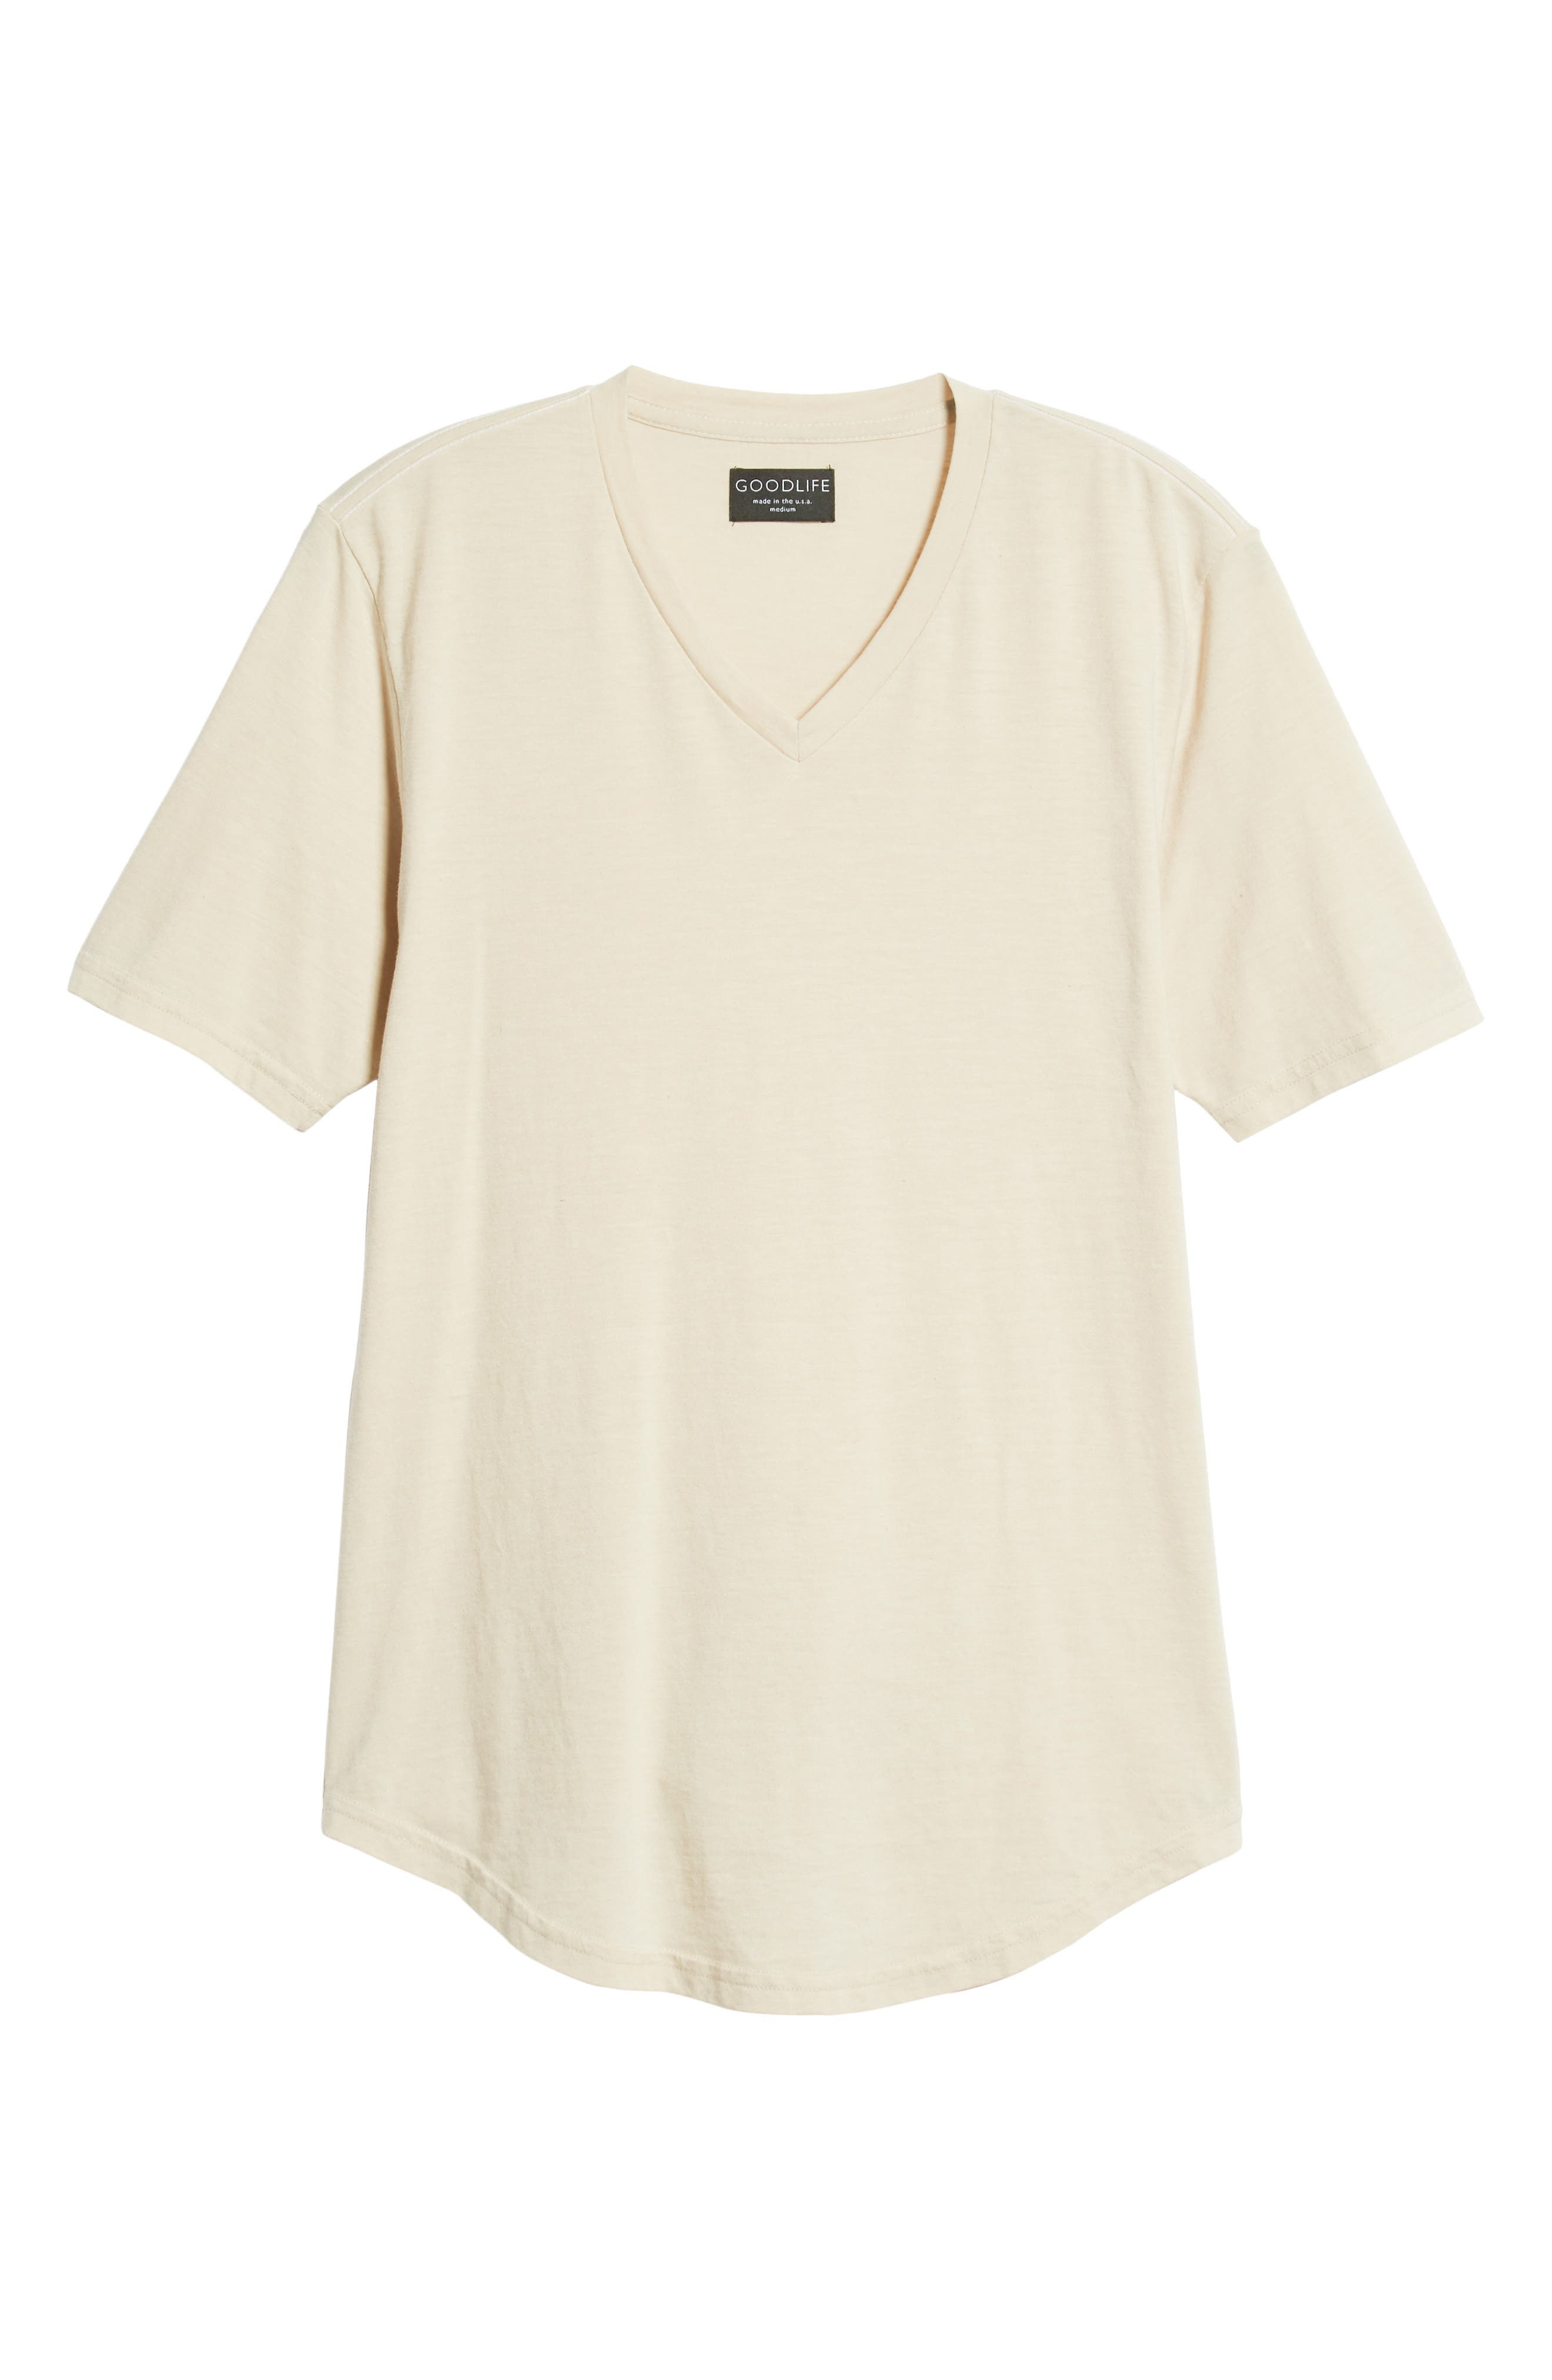 GOODLIFE, Scallop Triblend V-Neck T-Shirt, Alternate thumbnail 6, color, OYSTER